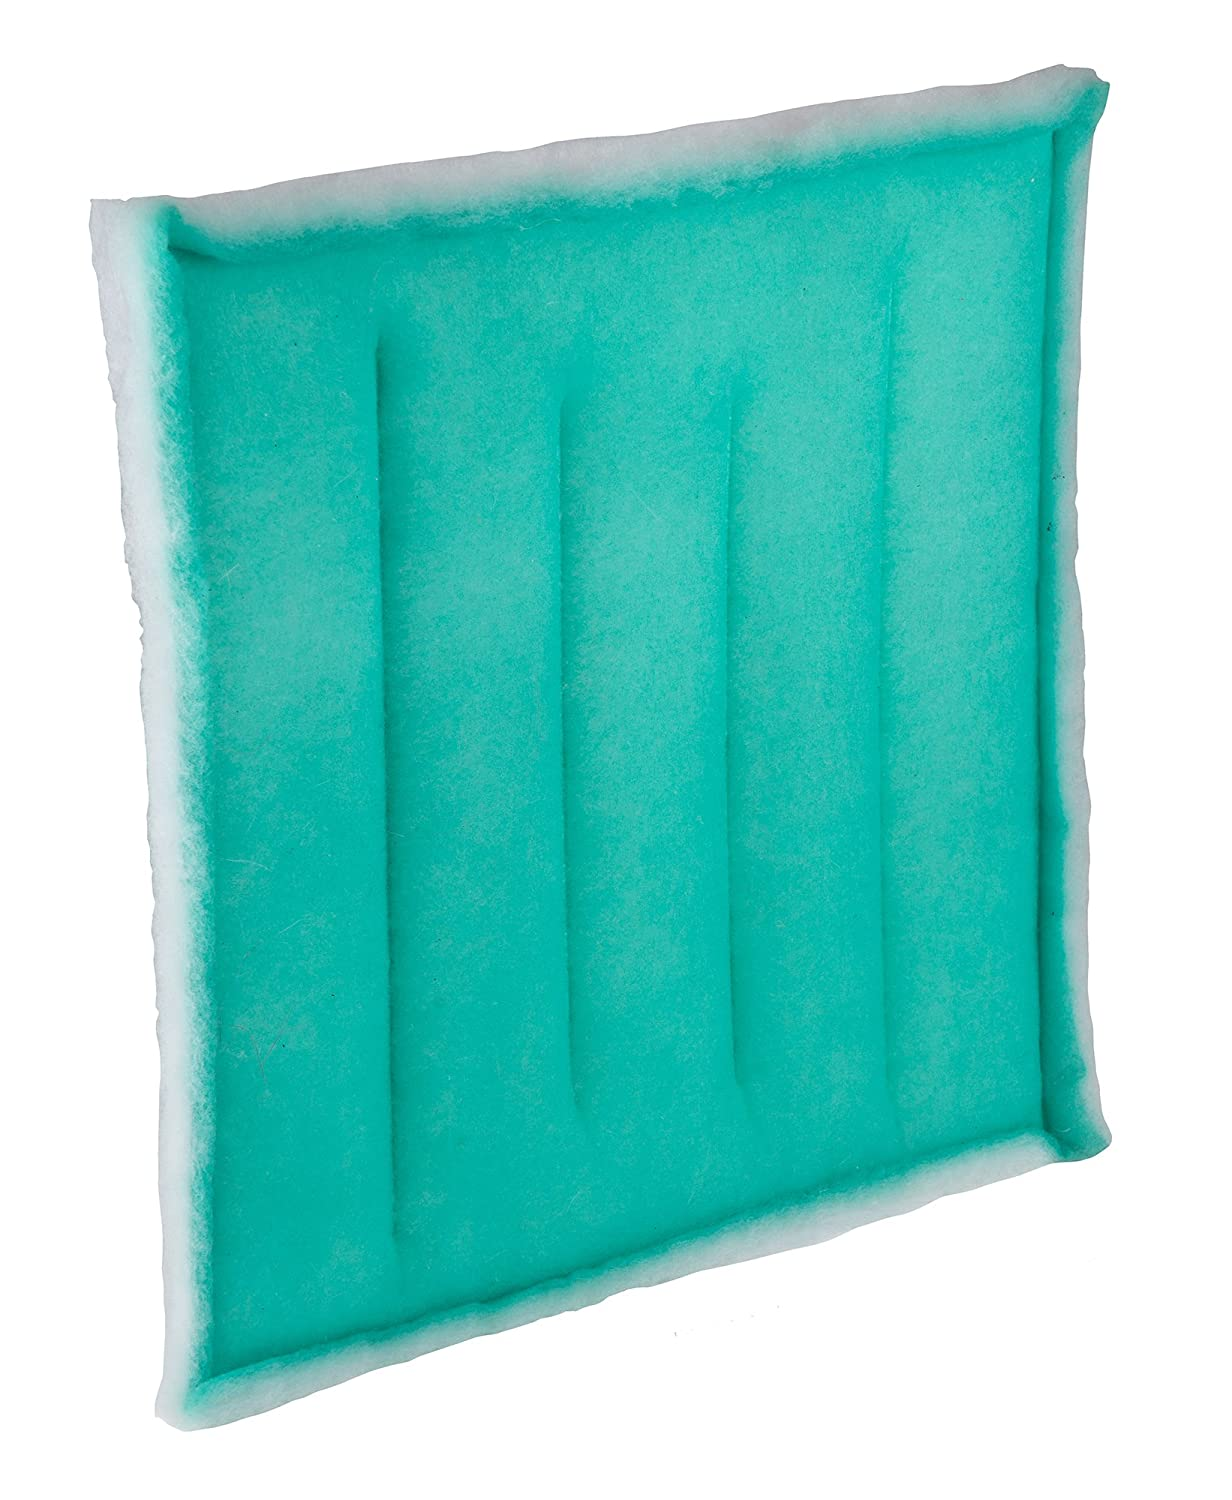 Polyester w//interal Wire Frame Filter 20x20x2 PAFIF Finishing Business 20//Case 20x20x2 PAFIF 2020PAFIFE Polyester w//interal Wire Frame Filter Chemco 20//Case FG